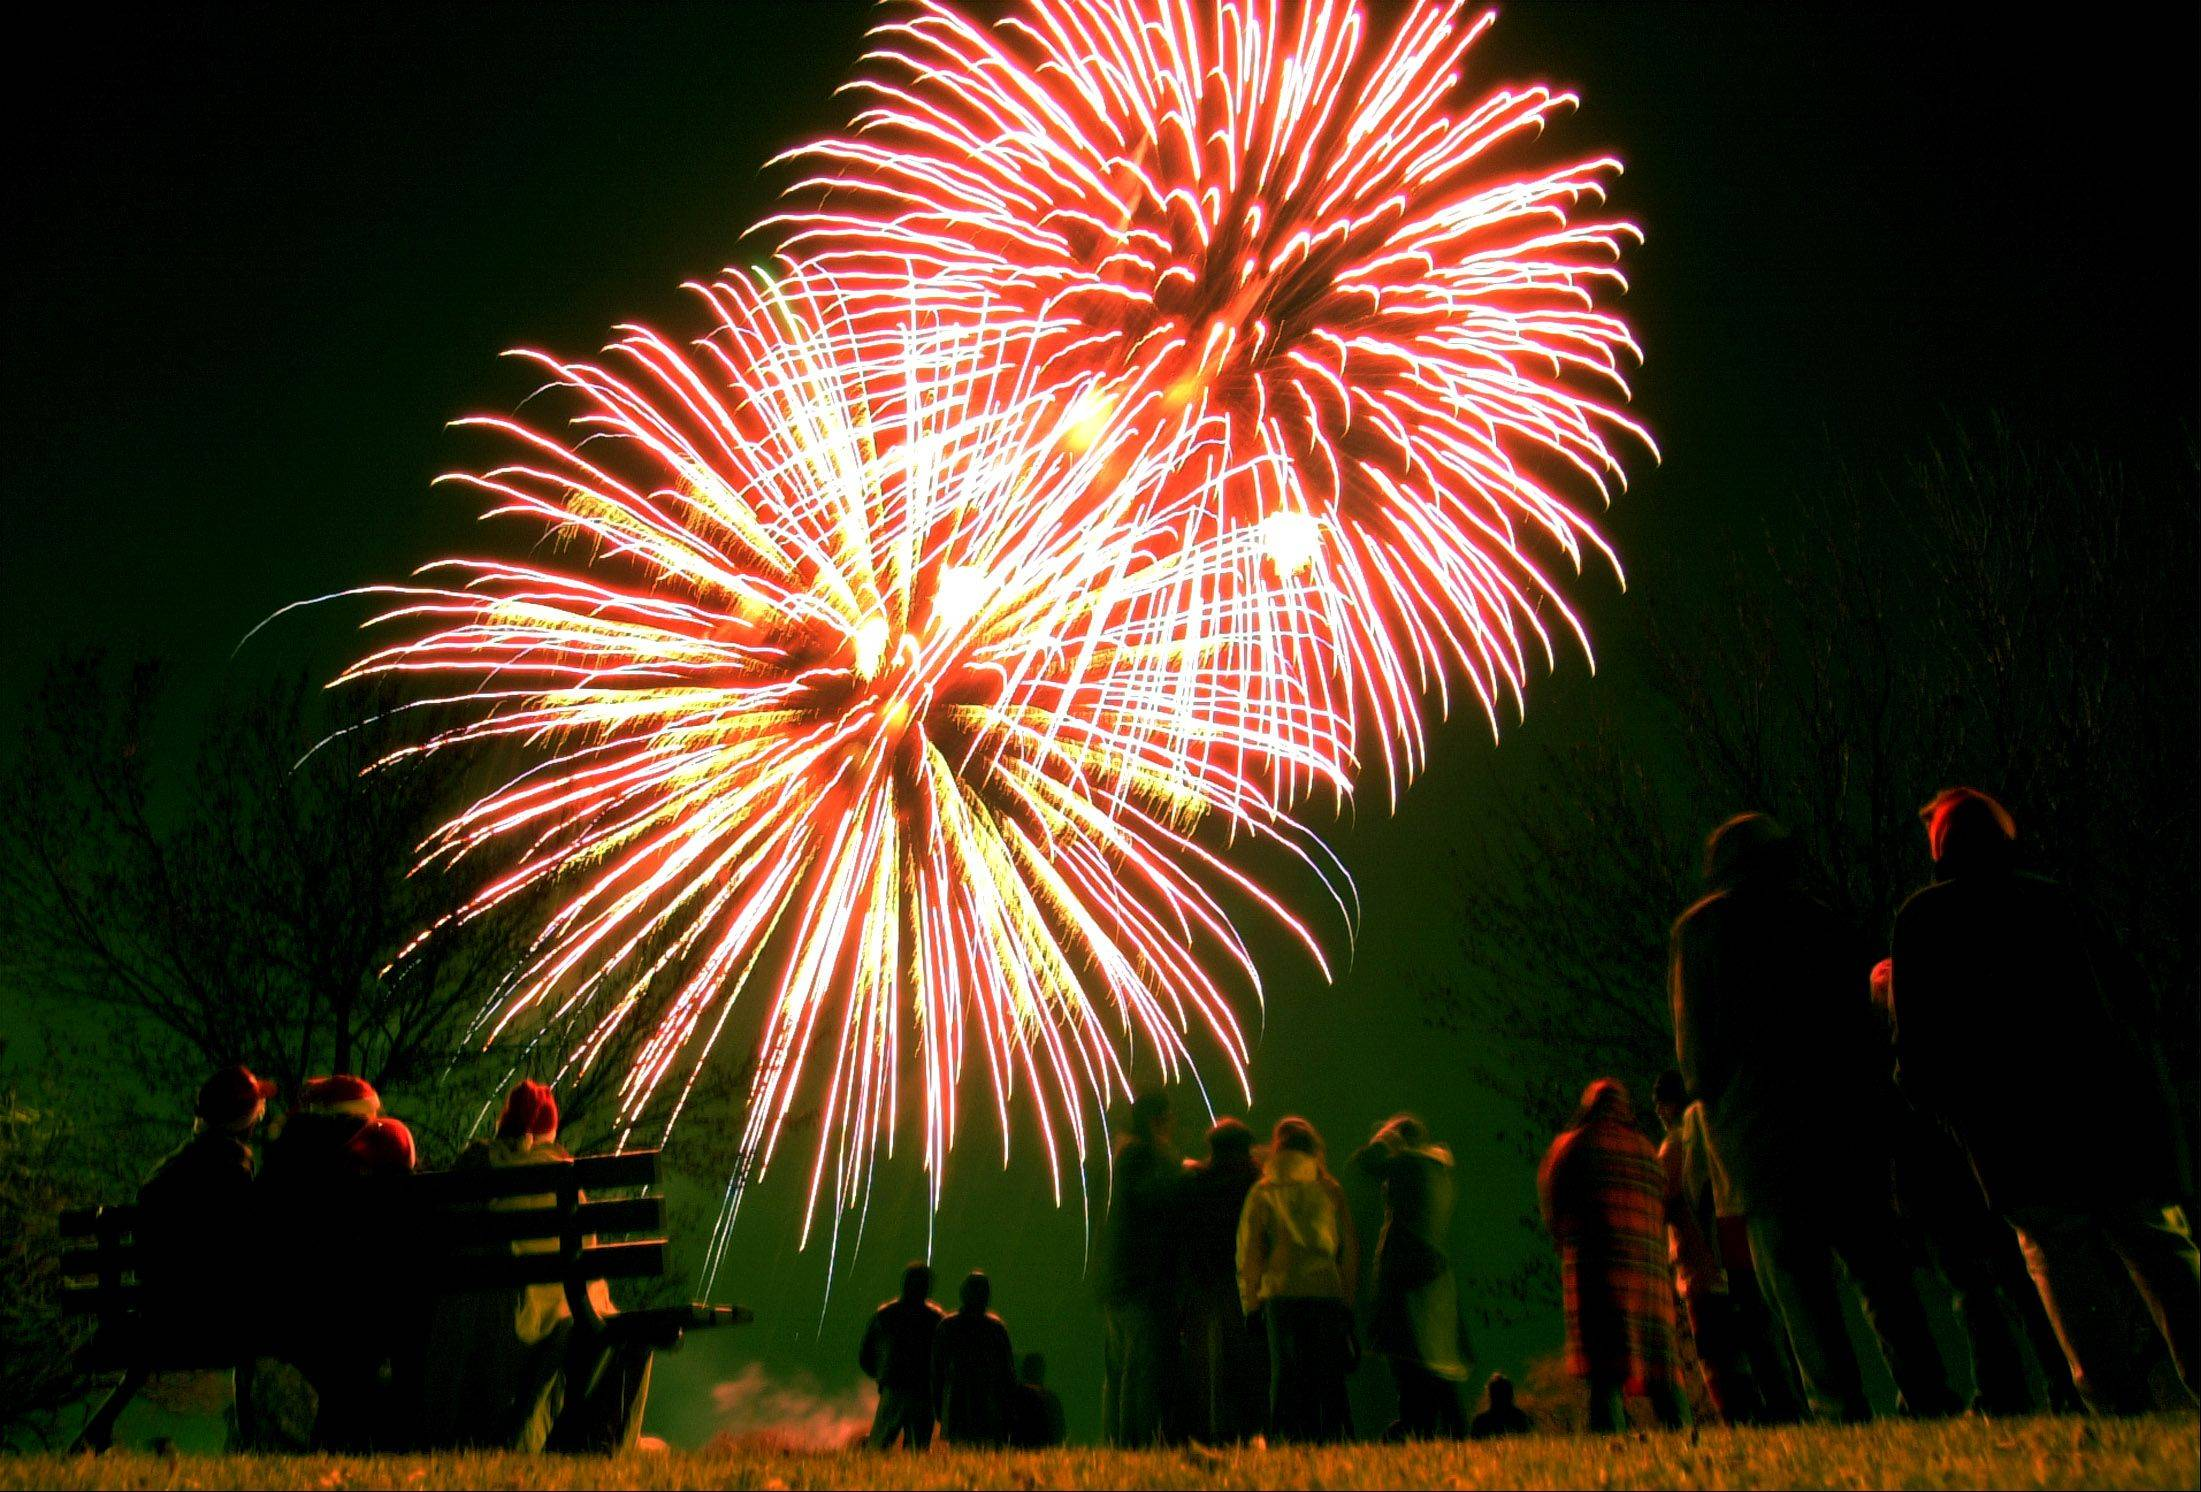 See Vernon Hills' Fourth of July fireworks over Century Park on Monday, July 4.